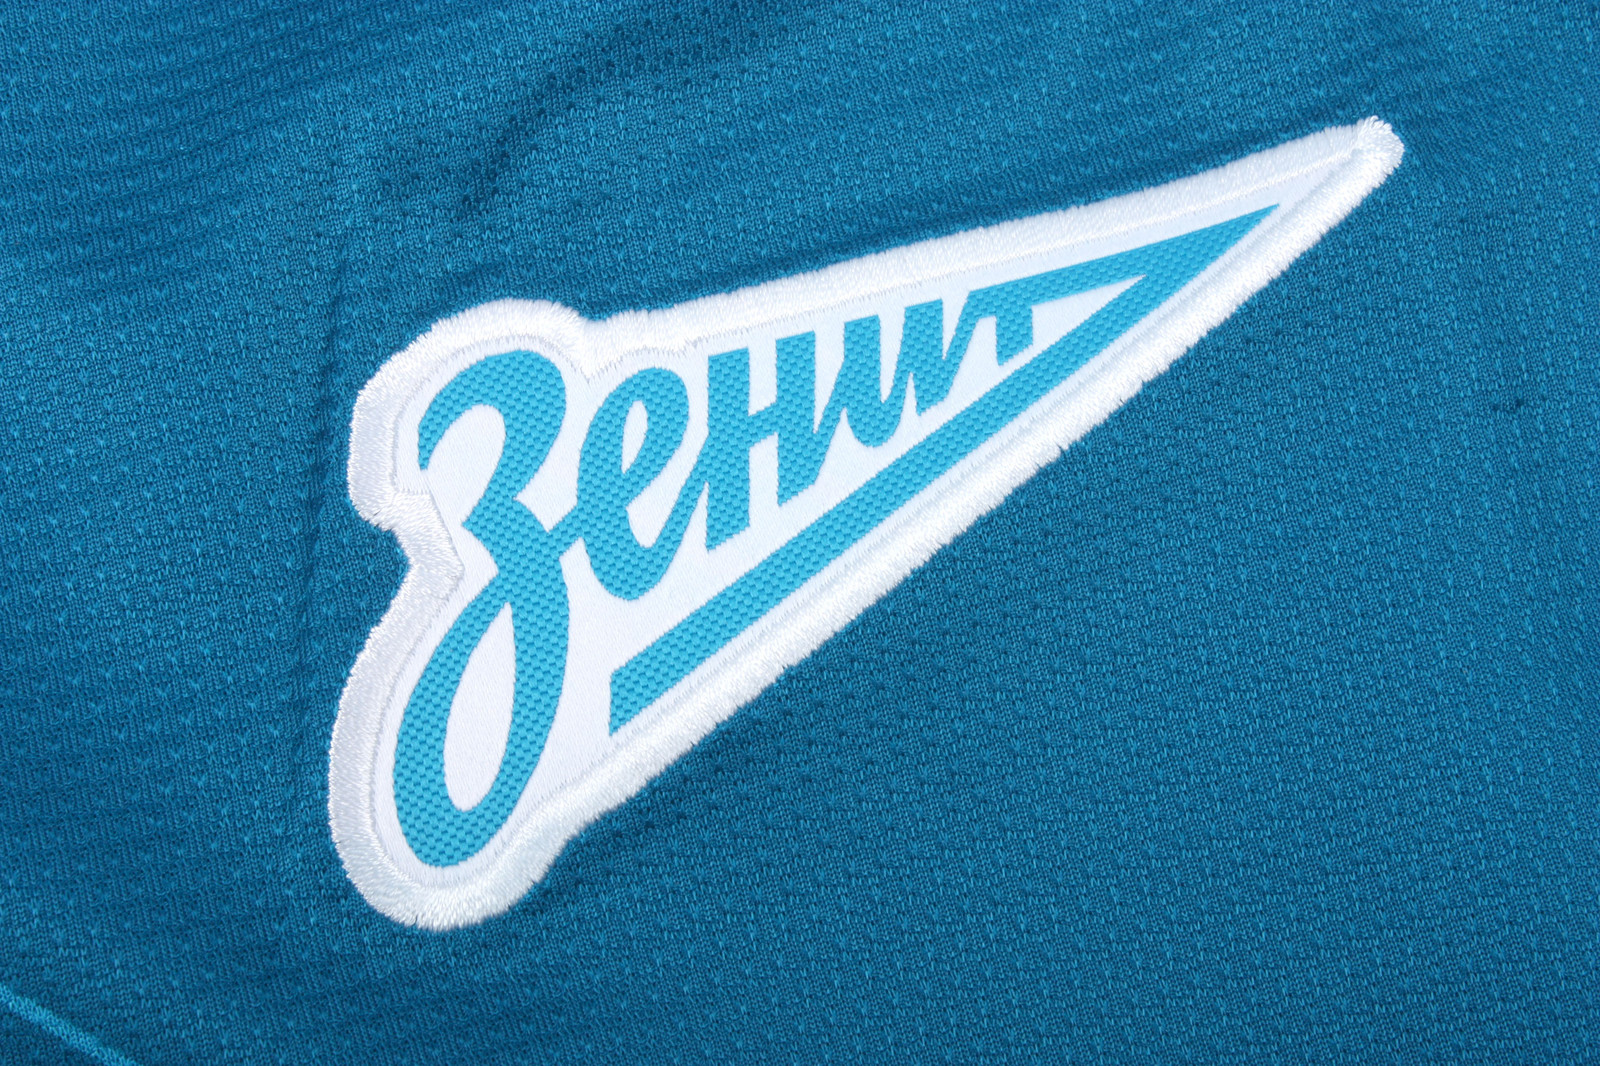 Zenit: Zenit 13-14 (2013-14) Home And Away Kits Released